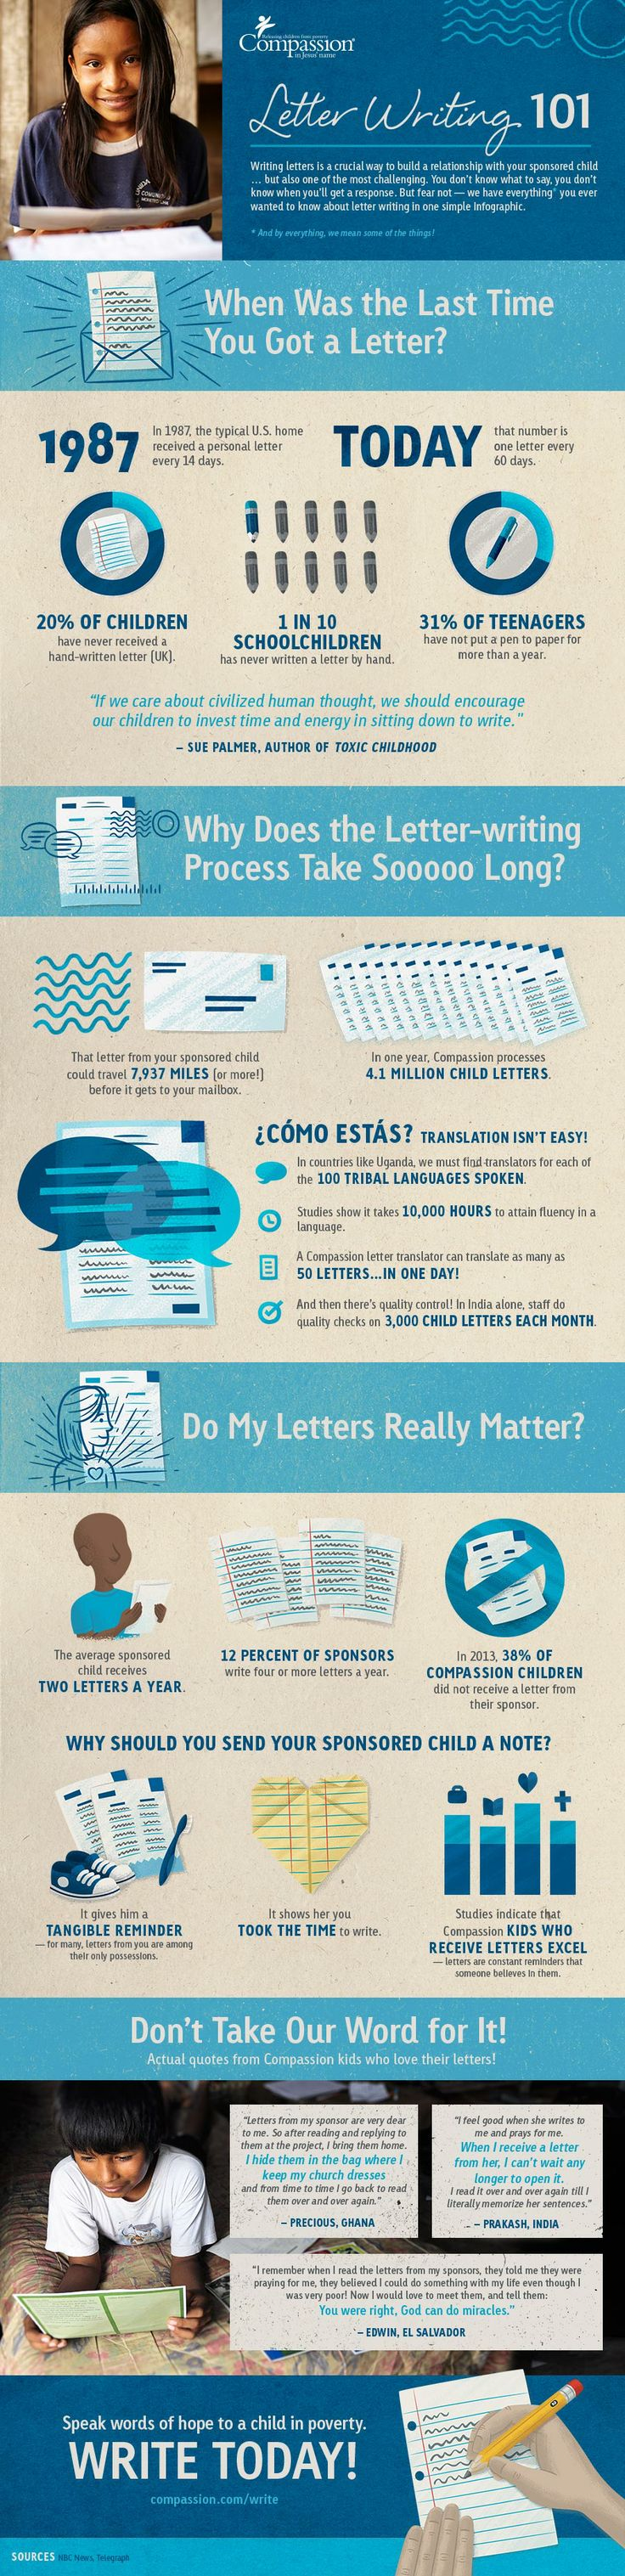 Letter Writing 101 infographic The 15 best